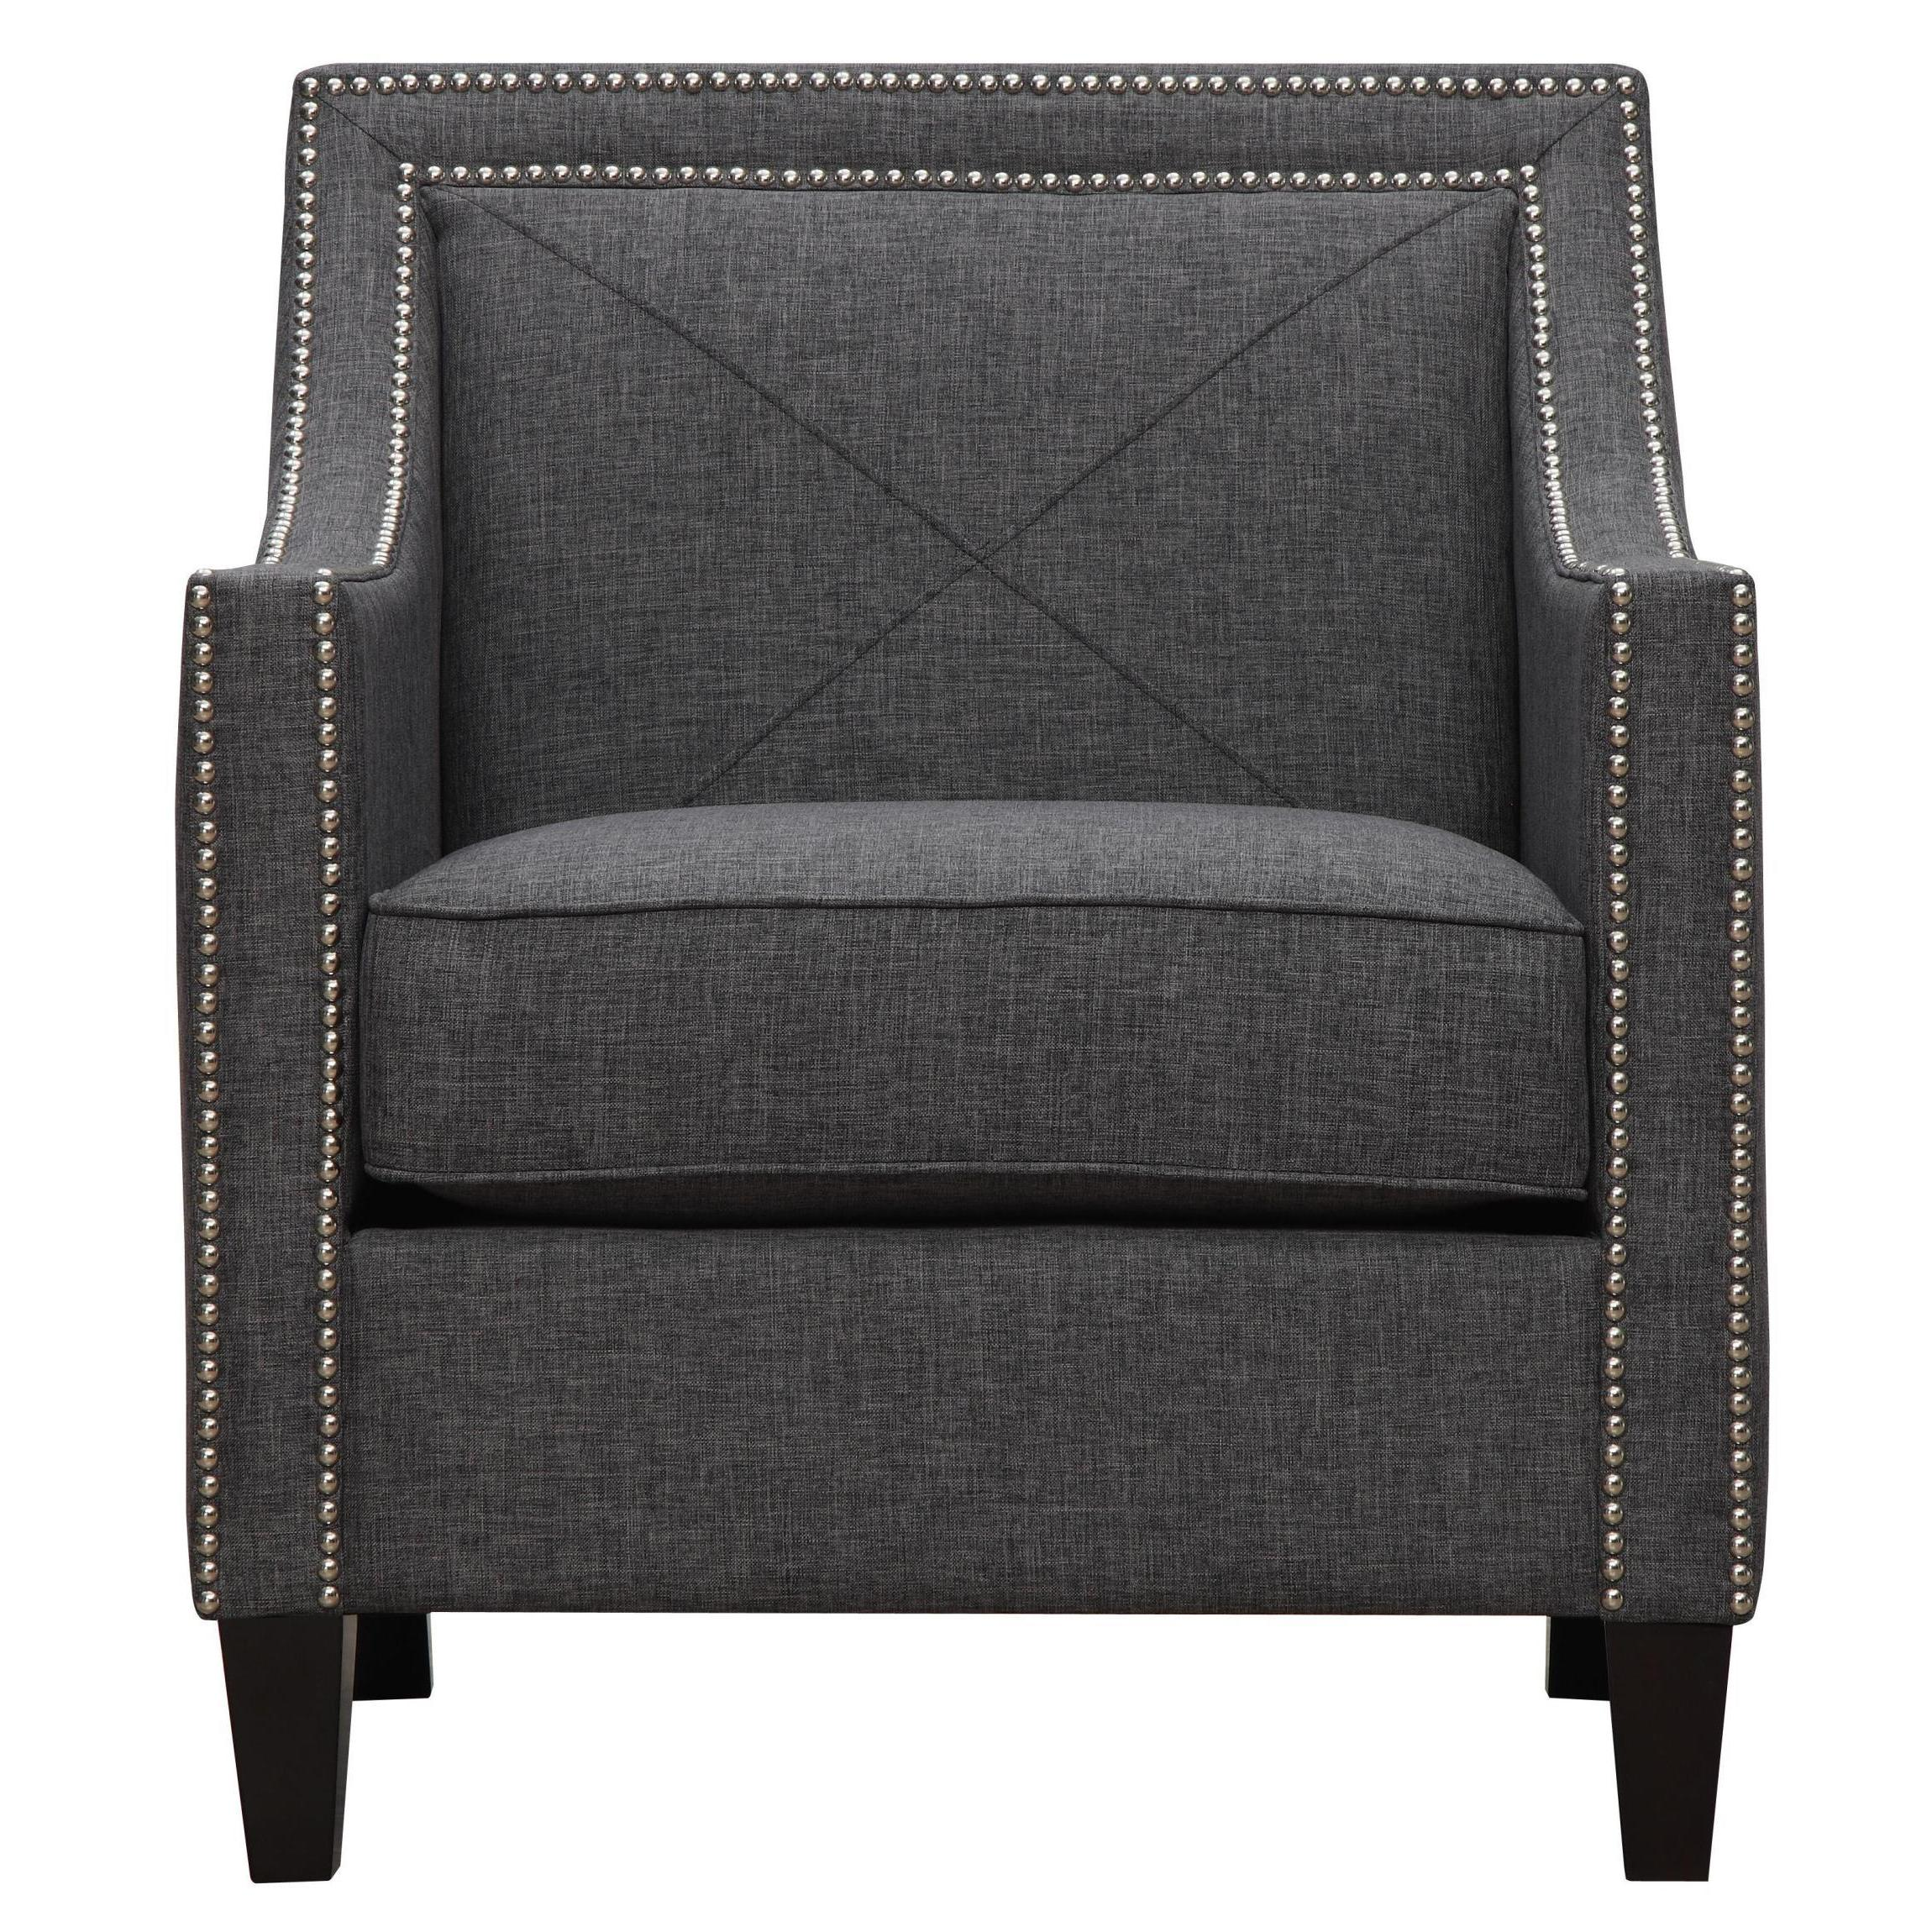 Gentil Shop Asheville Dark Grey Linen Chair   Free Shipping Today   Overstock.com    9291118